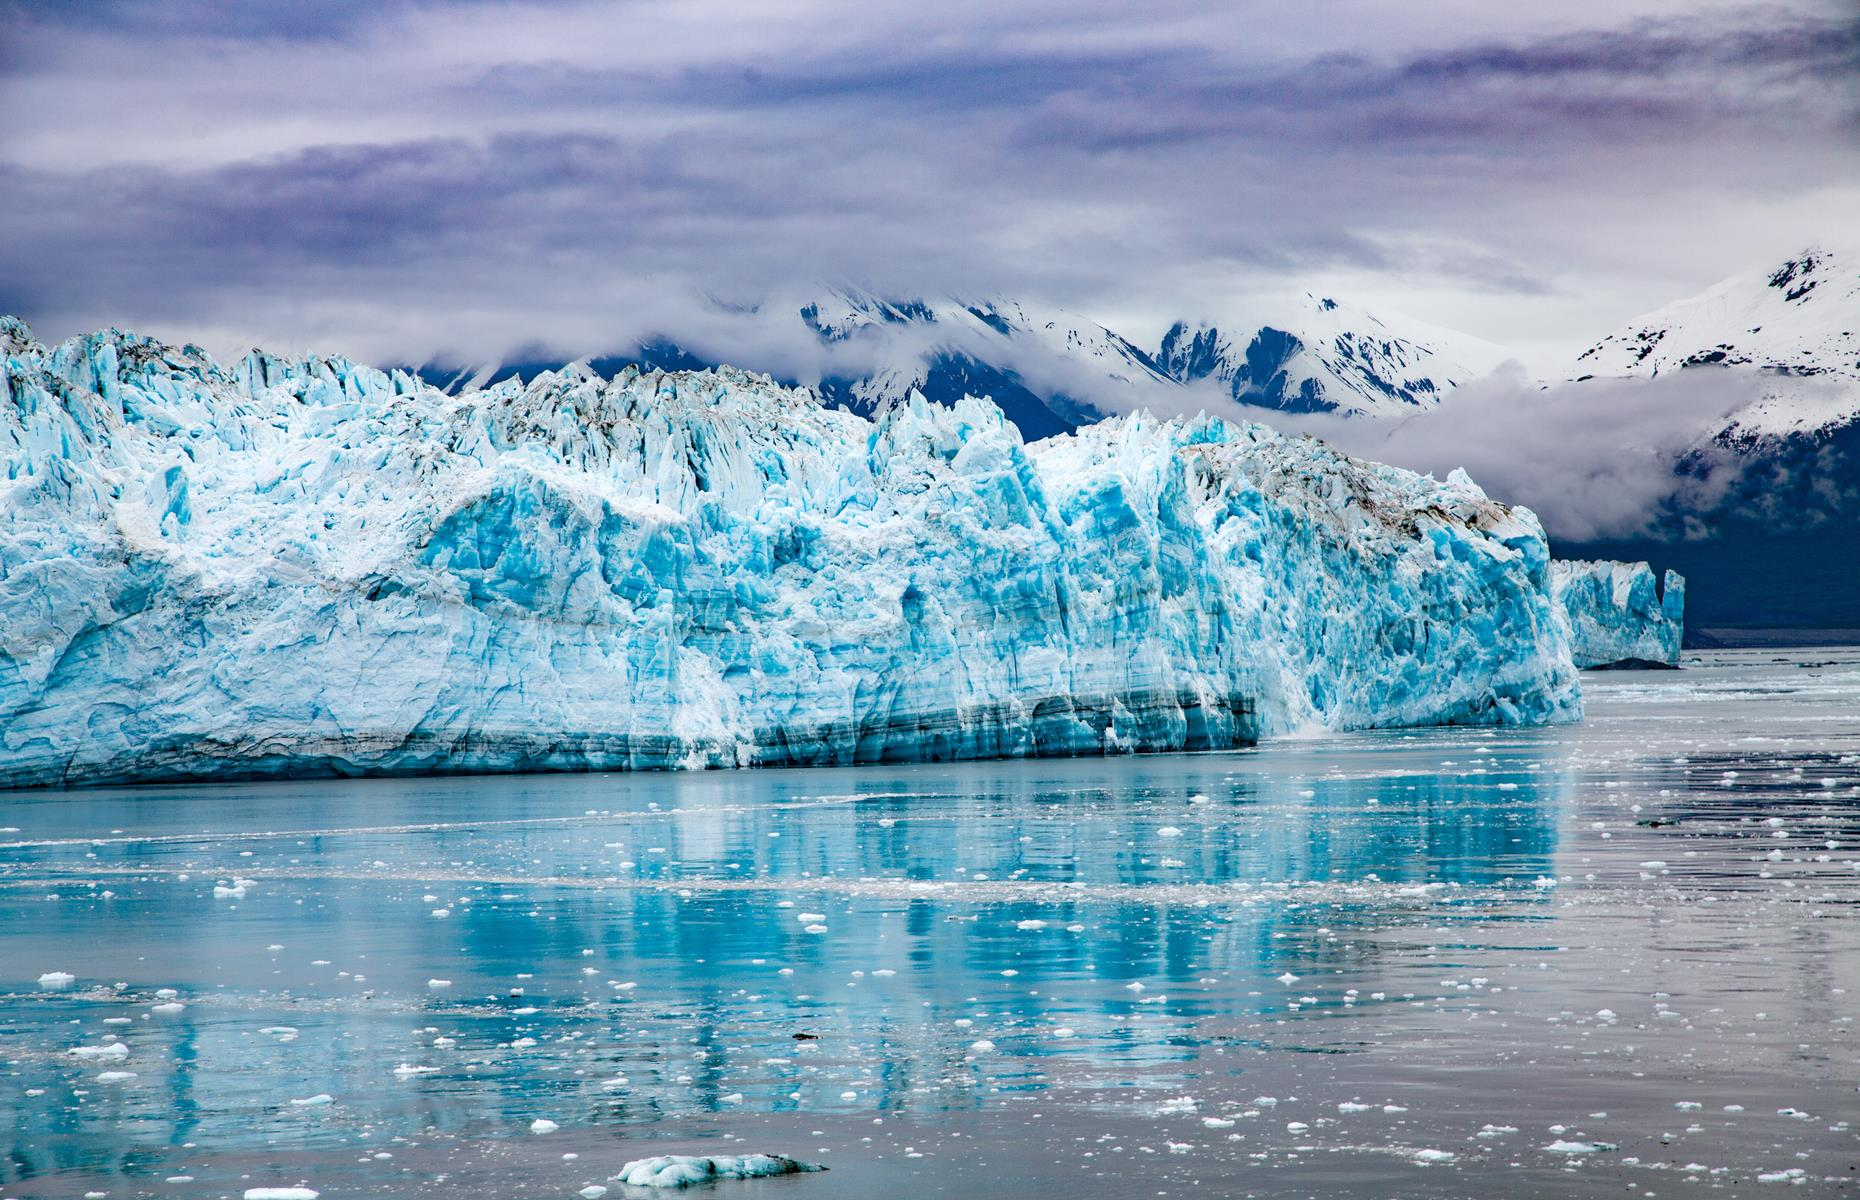 "Slide 48 of 61: The Hubbard Glacier is one of Alaska's most impressive. It's situated in the eastern part of the state, off the coast of Yakutat, and is a gargantuan six miles-plus wide and 400-feet (122m) tall at its highest point. The blue-hued beast is well-known for being ""active"", slowly advancing through the gulf, rather than retreating like many other of the world's glaciers. The Hubbard is an itinerary highlight on many Alaskan cruises."